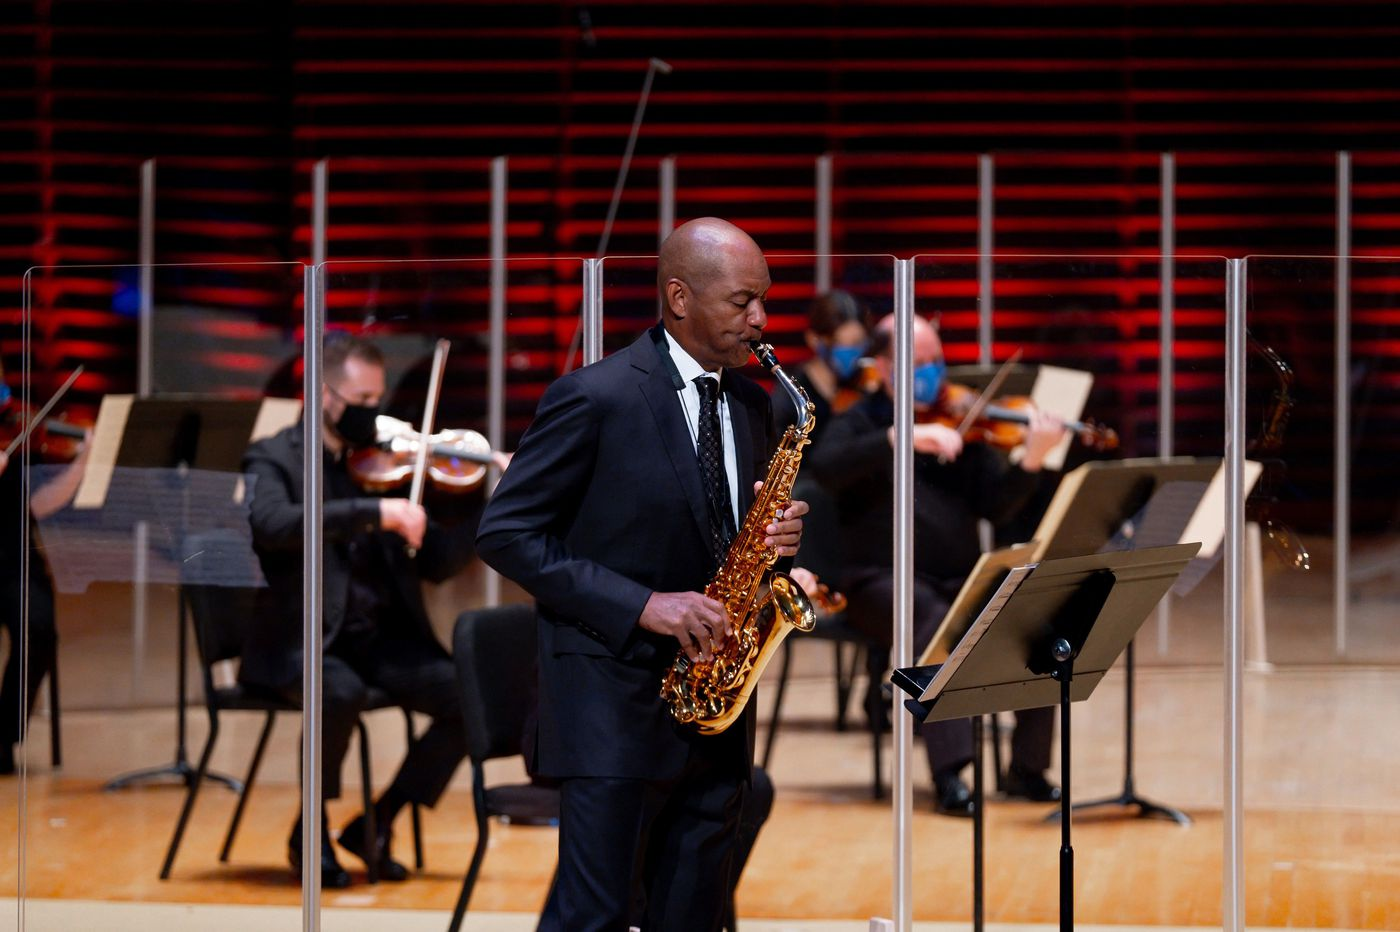 Back on stage in Verizon Hall (without an audience), the Philadelphia Orchestra spotlights Branford Marsalis and welcomes a new principal oboist